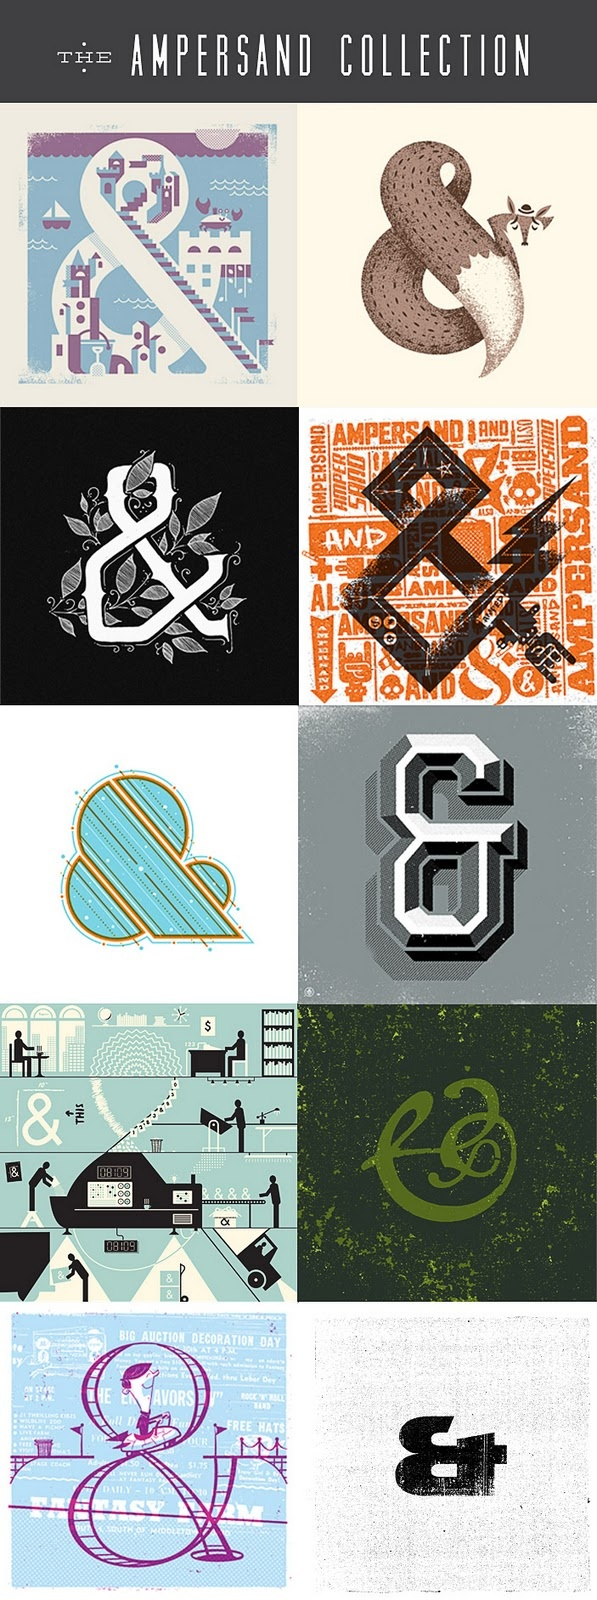 Beautiful and fun ampersand collection found at Mr. Mule's.